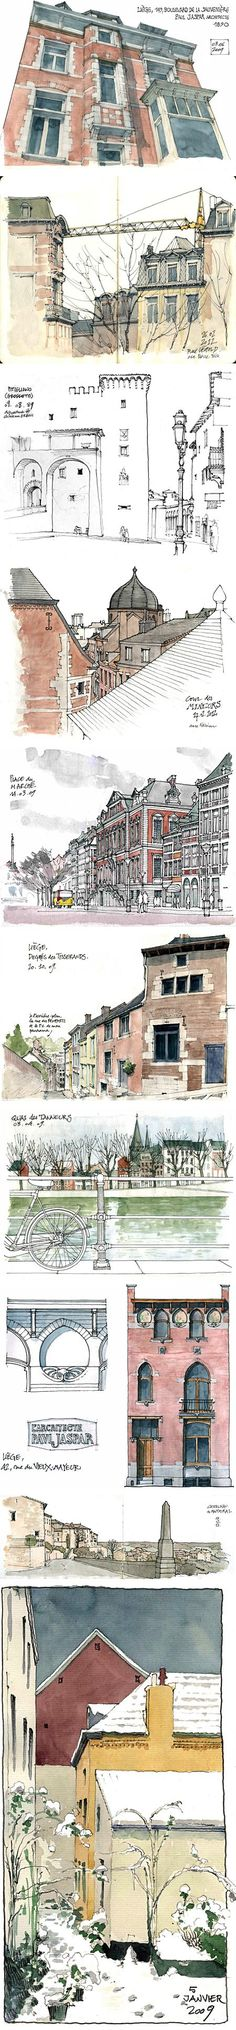 Watercolour architecture paintings by Gérard Michel. Drawing Sketches, Art Drawings, Illustrations, Illustration Art, Urban Sketchers, Architecture Drawings, Chiaroscuro, Michel, Concept Art